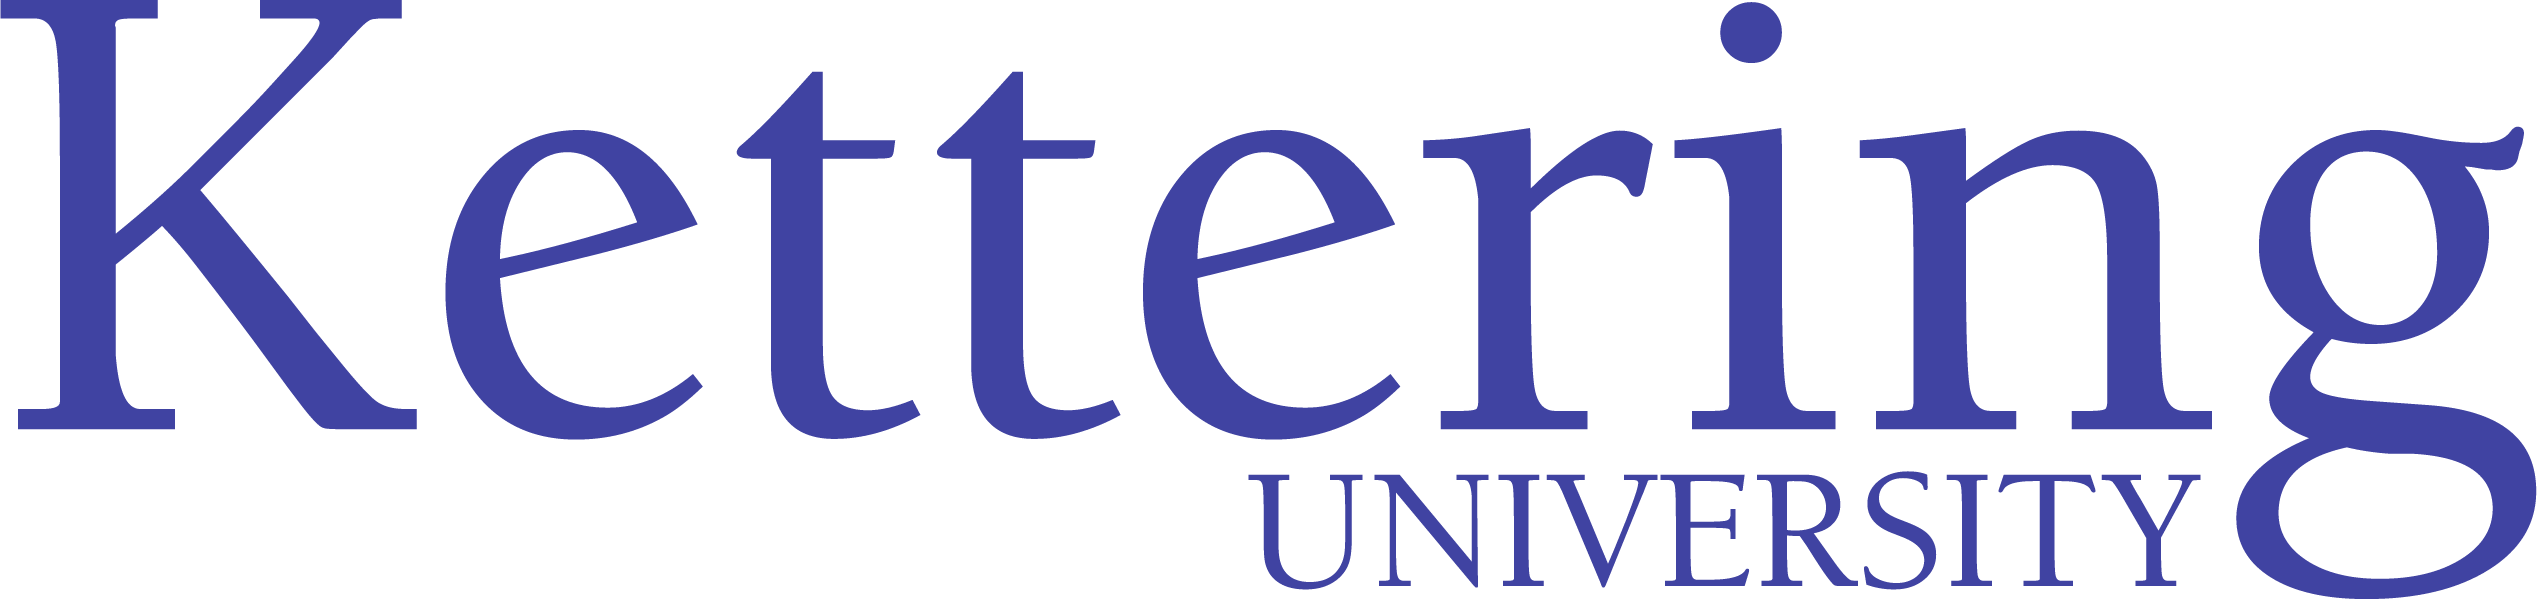 Kettering University logo in the color purple